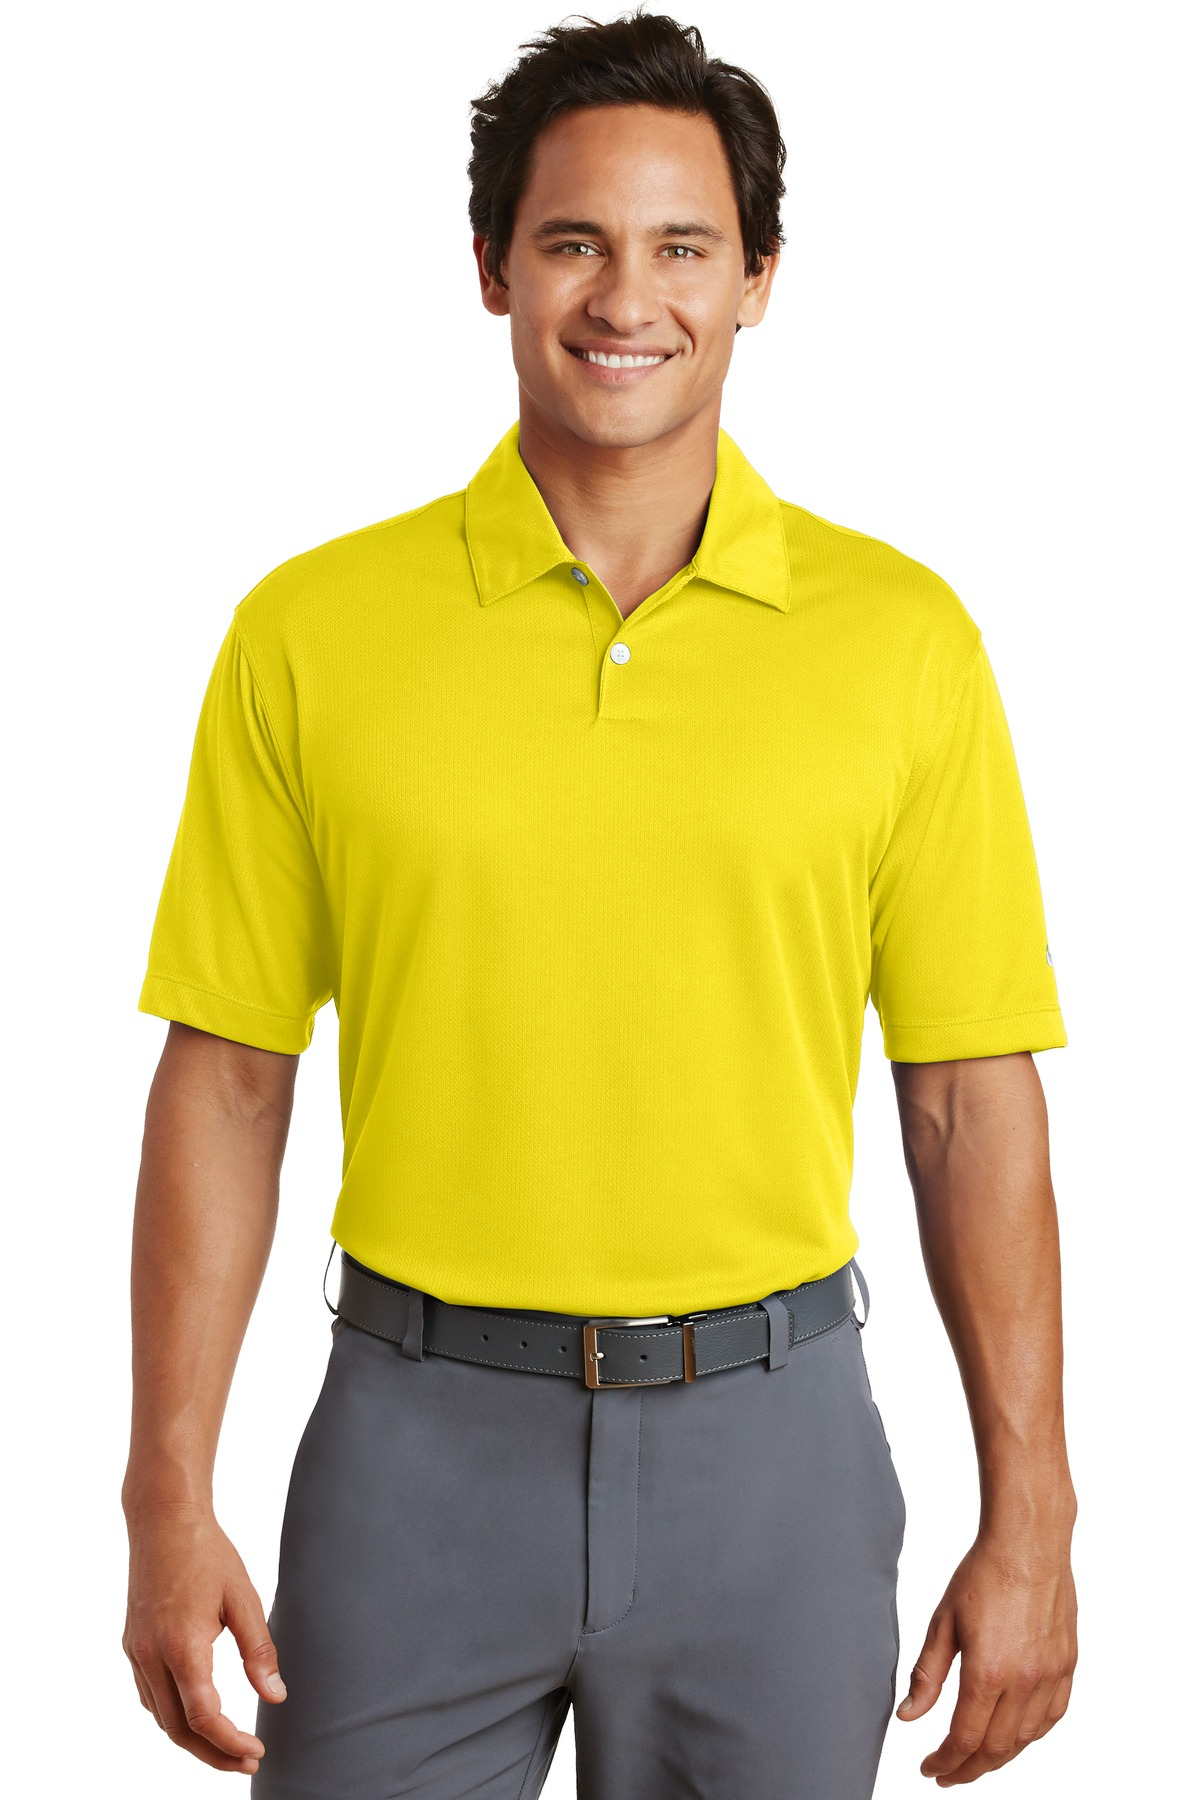 Nike Dri-FIT Pebble Texture Polo. 373749 - Tour Yellow